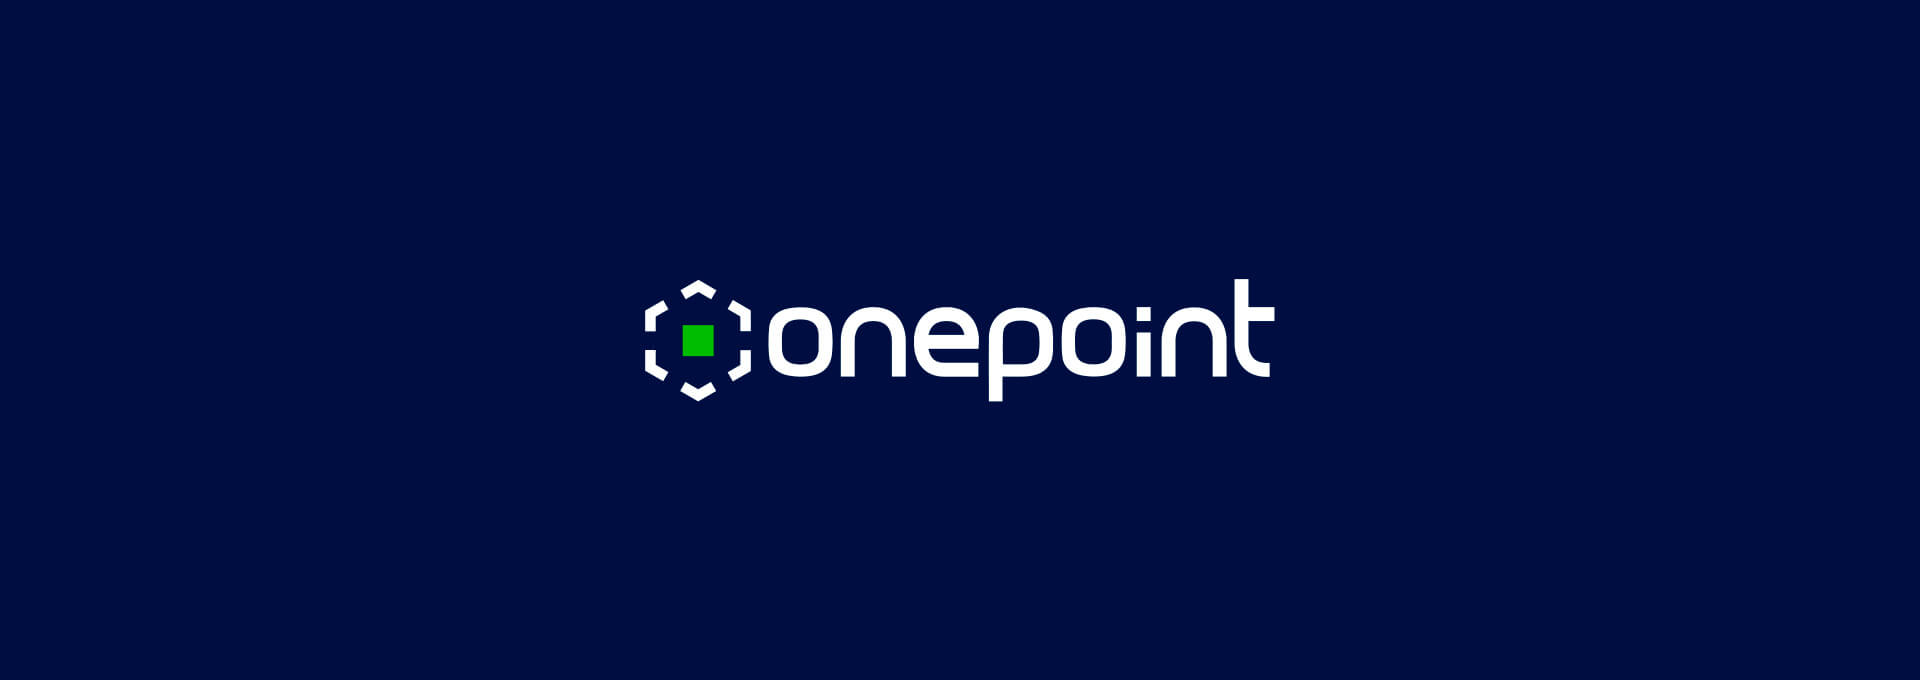 Onepoint | Plugin | Extend your Governance